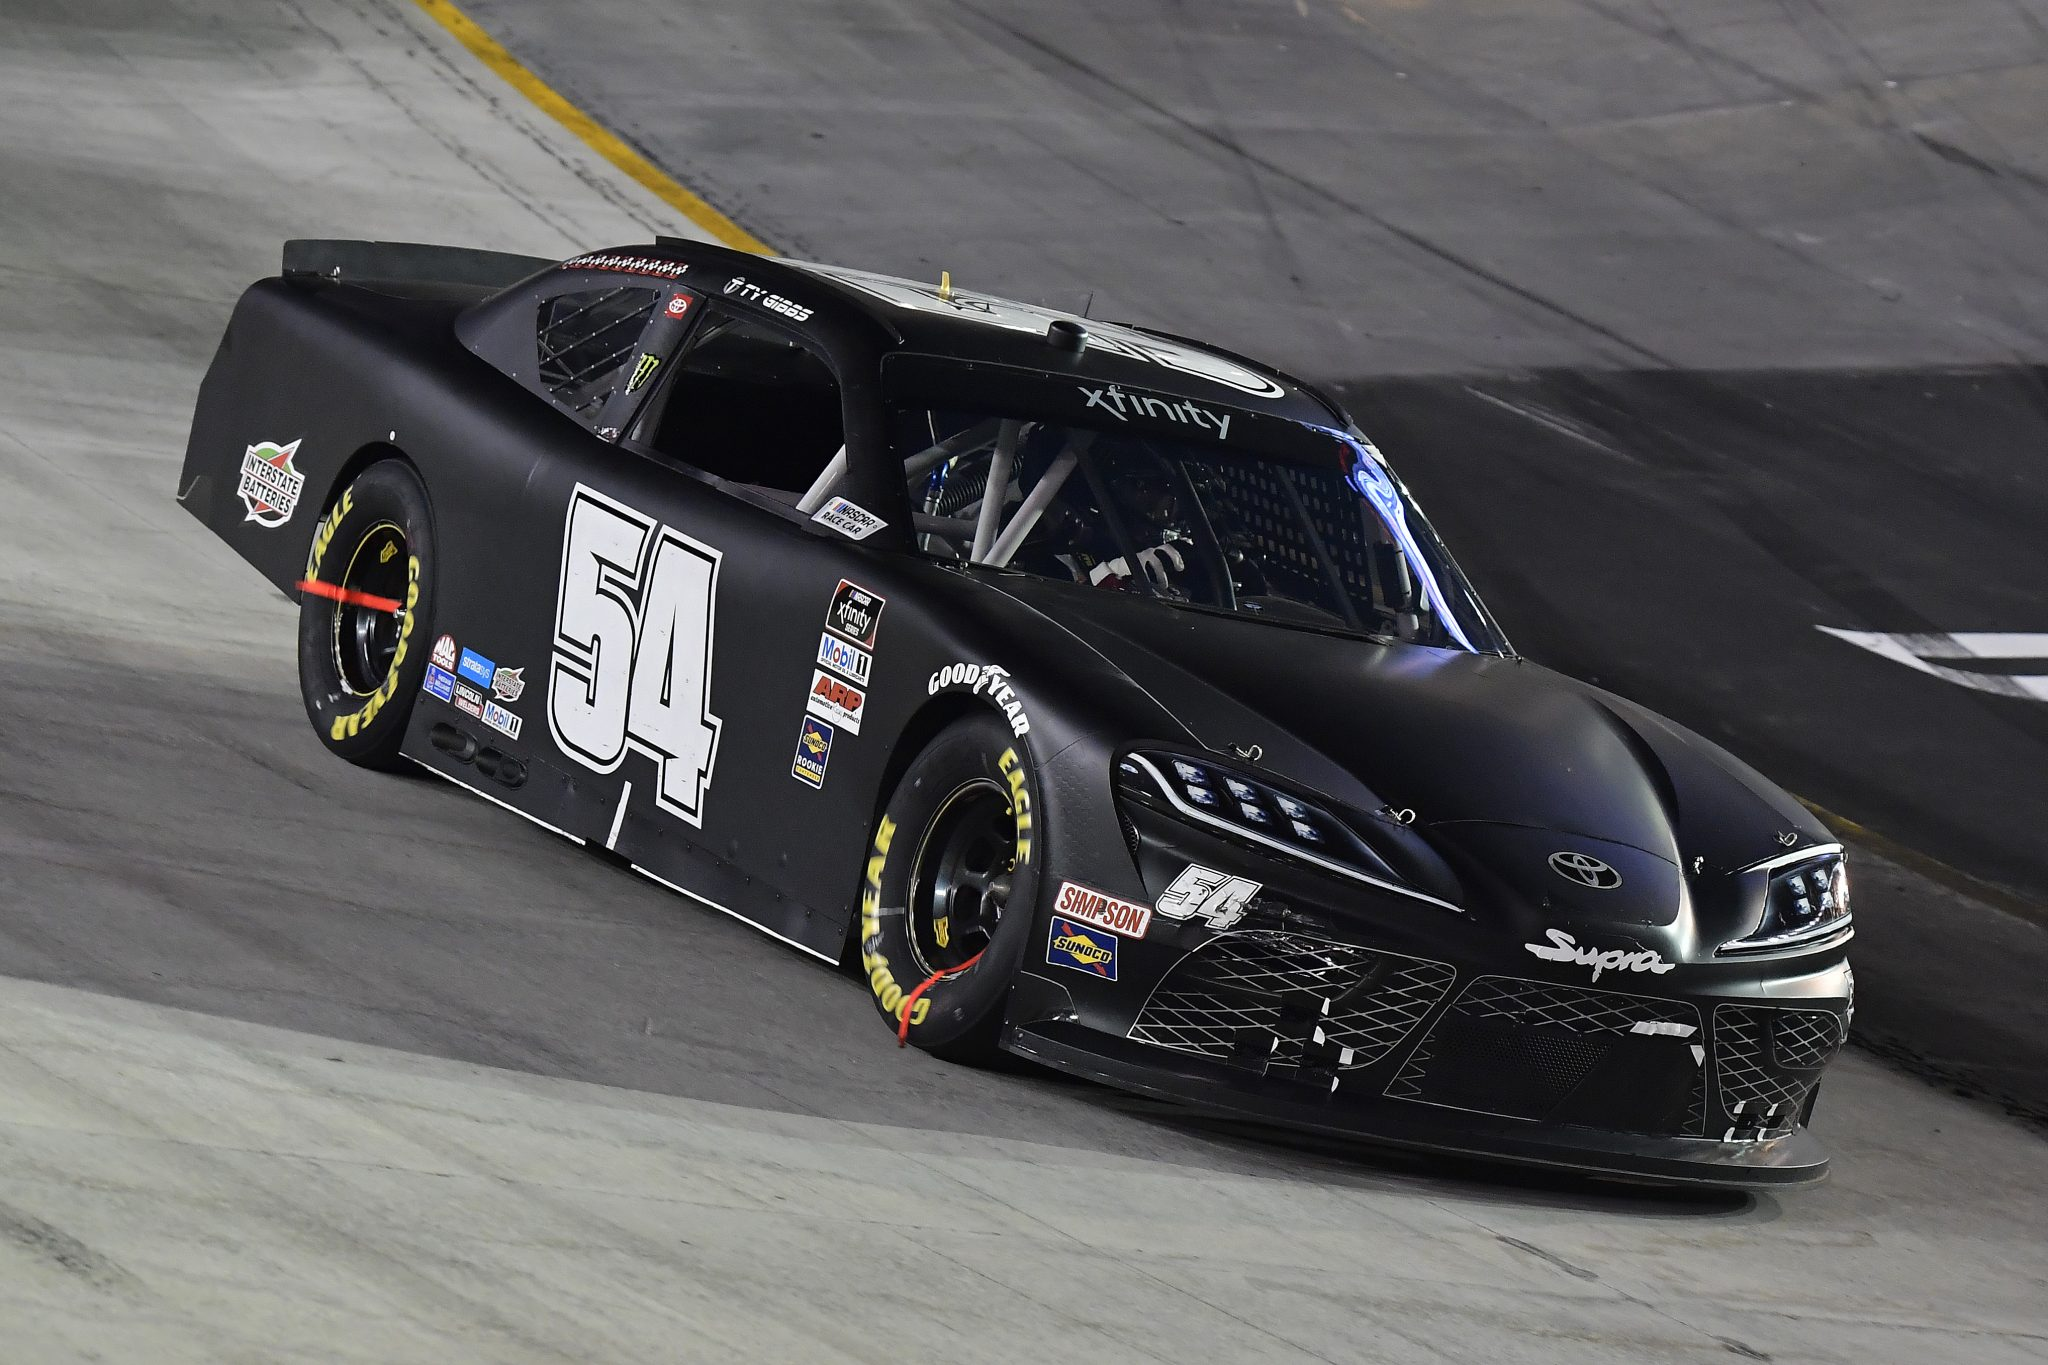 BRISTOL, TENNESSEE - SEPTEMBER 17: Ty Gibbs, driver of the #54 Joe Gibbs Racing Toyota, drives during the NASCAR Xfinity Series Food City 300 at Bristol Motor Speedway on September 17, 2021 in Bristol, Tennessee. (Photo by Logan Riely/Getty Images) | Getty Images